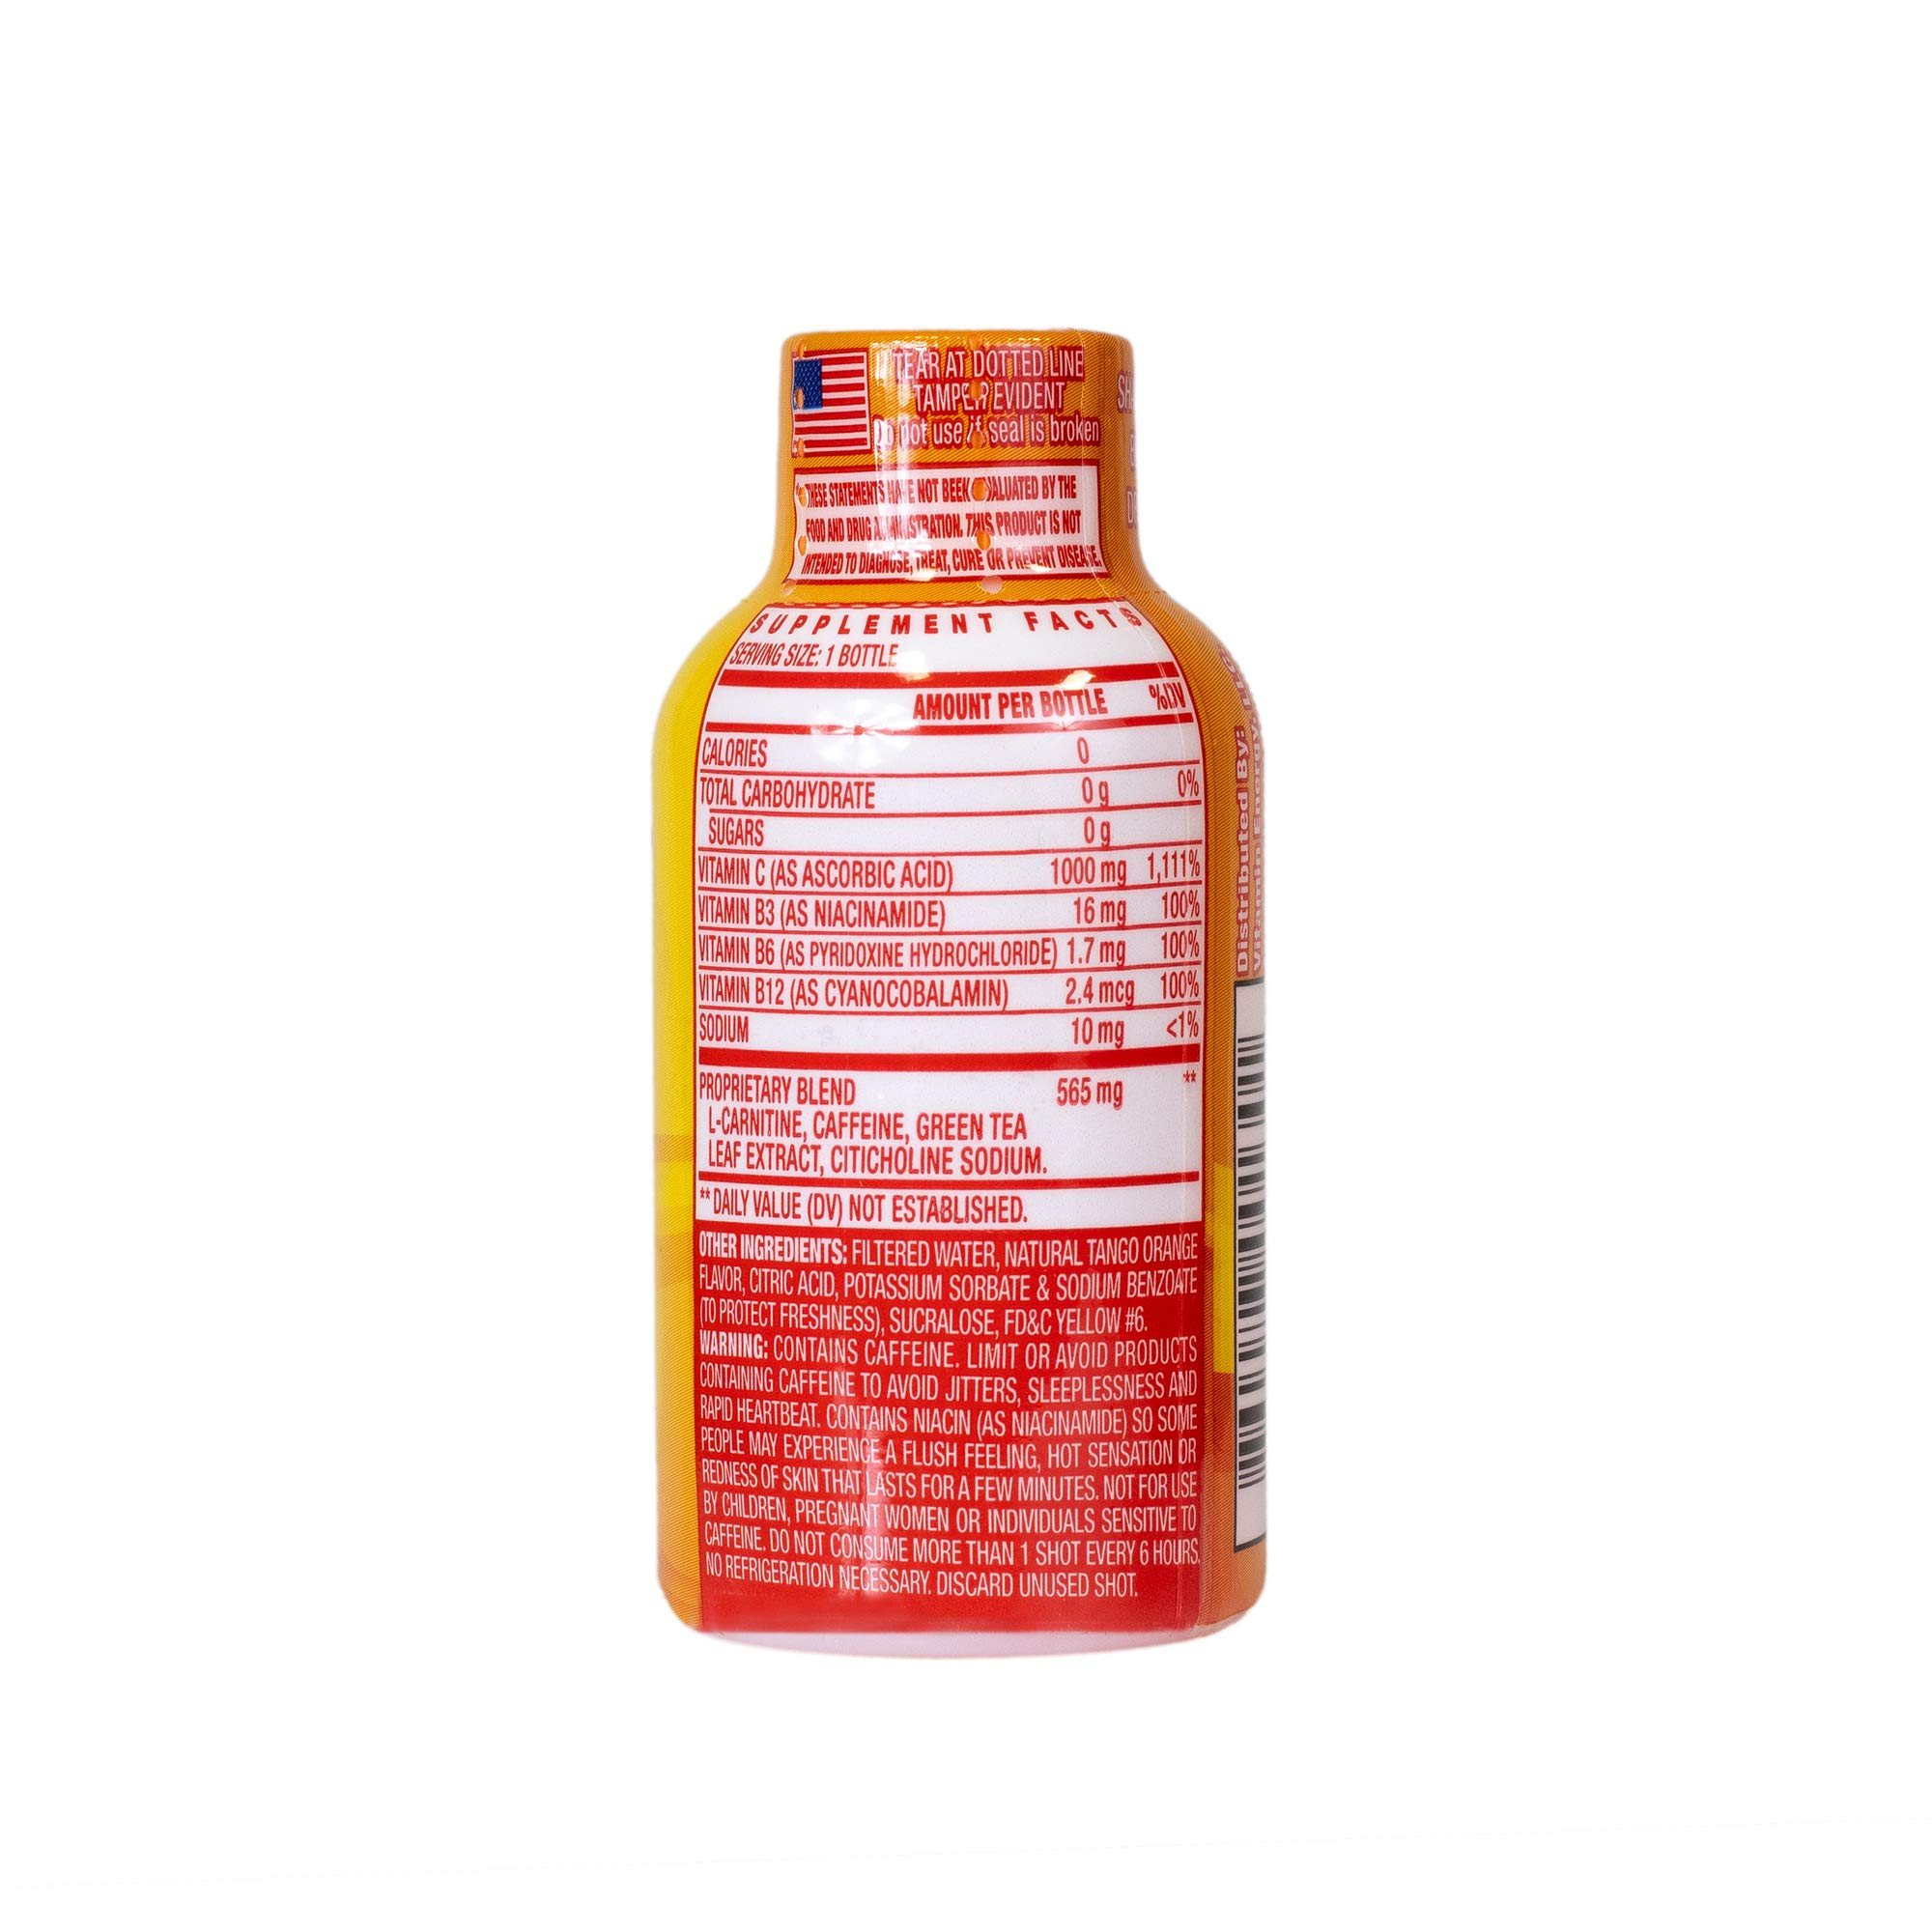 Vitamin Energy Shots – up to 7 Hours of Energy, More Vitamin C Than 10 Oranges, 0 Calories (48 Count) by Vitamin Energy (Image #8)